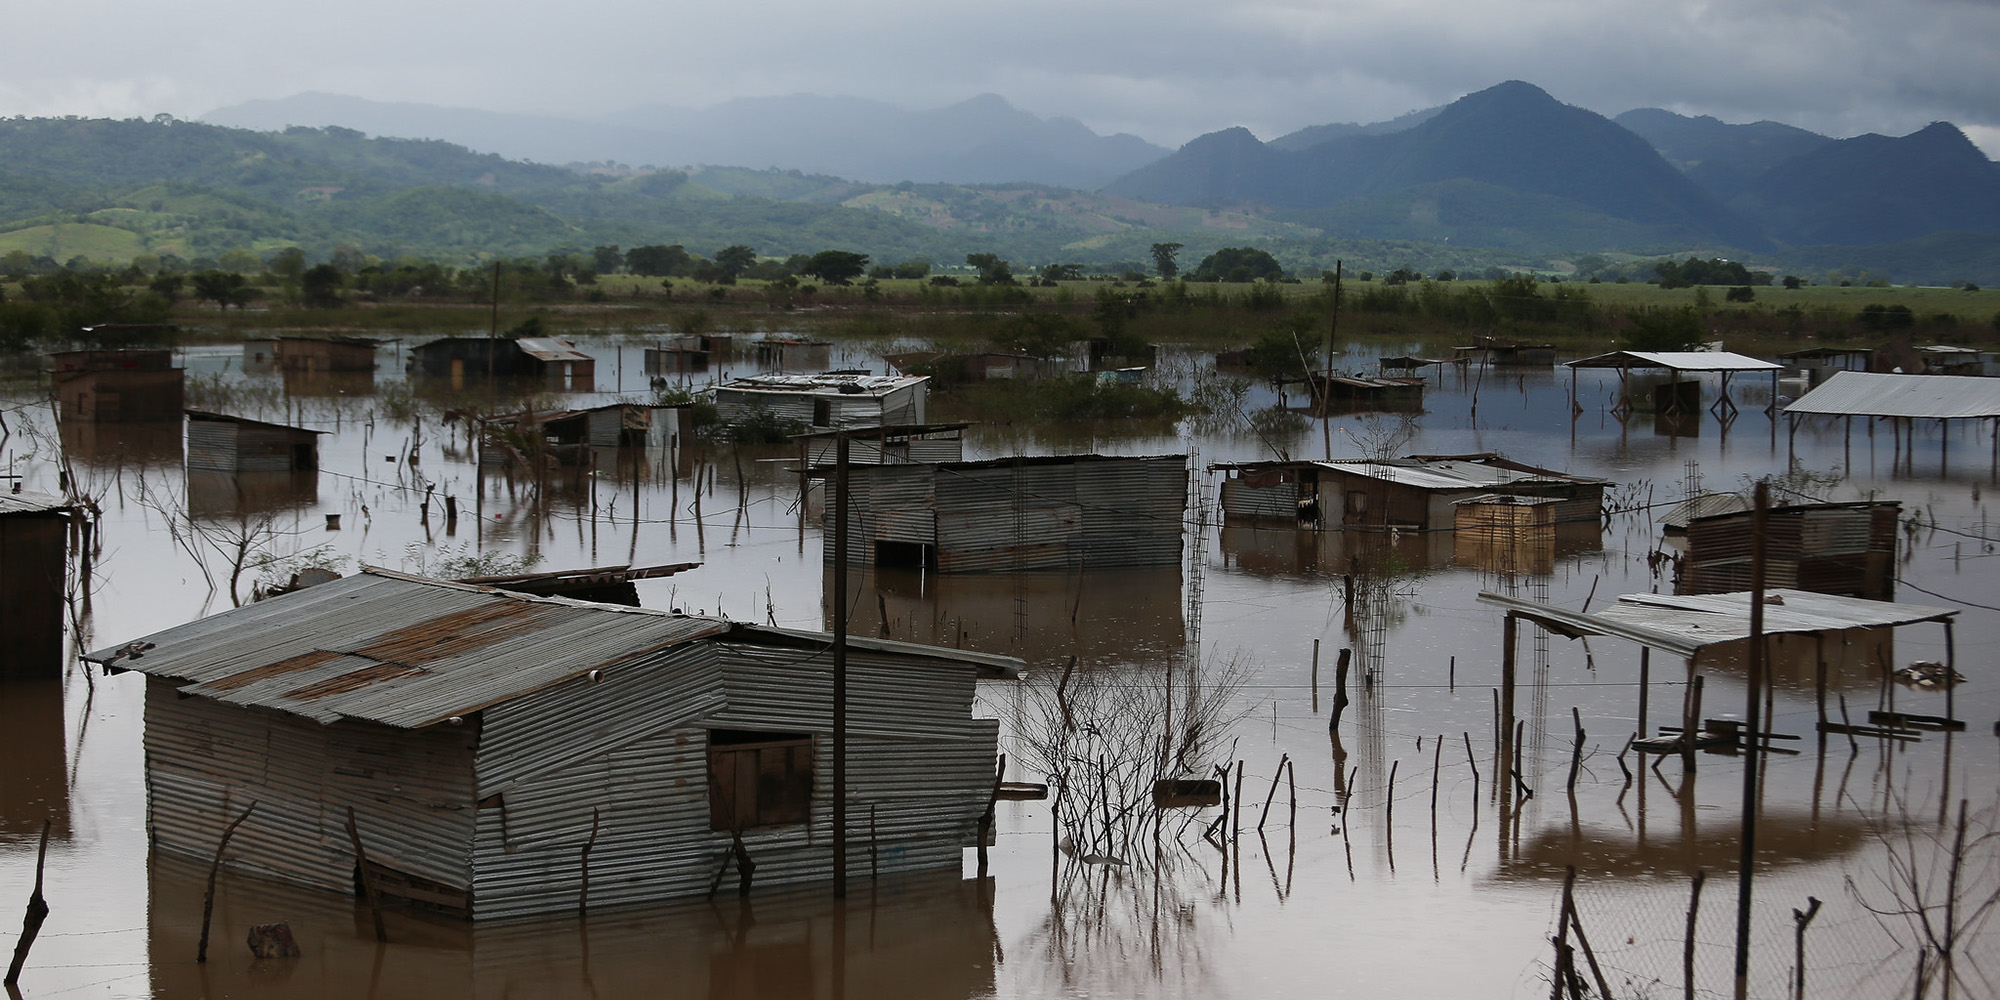 Flooding in central America